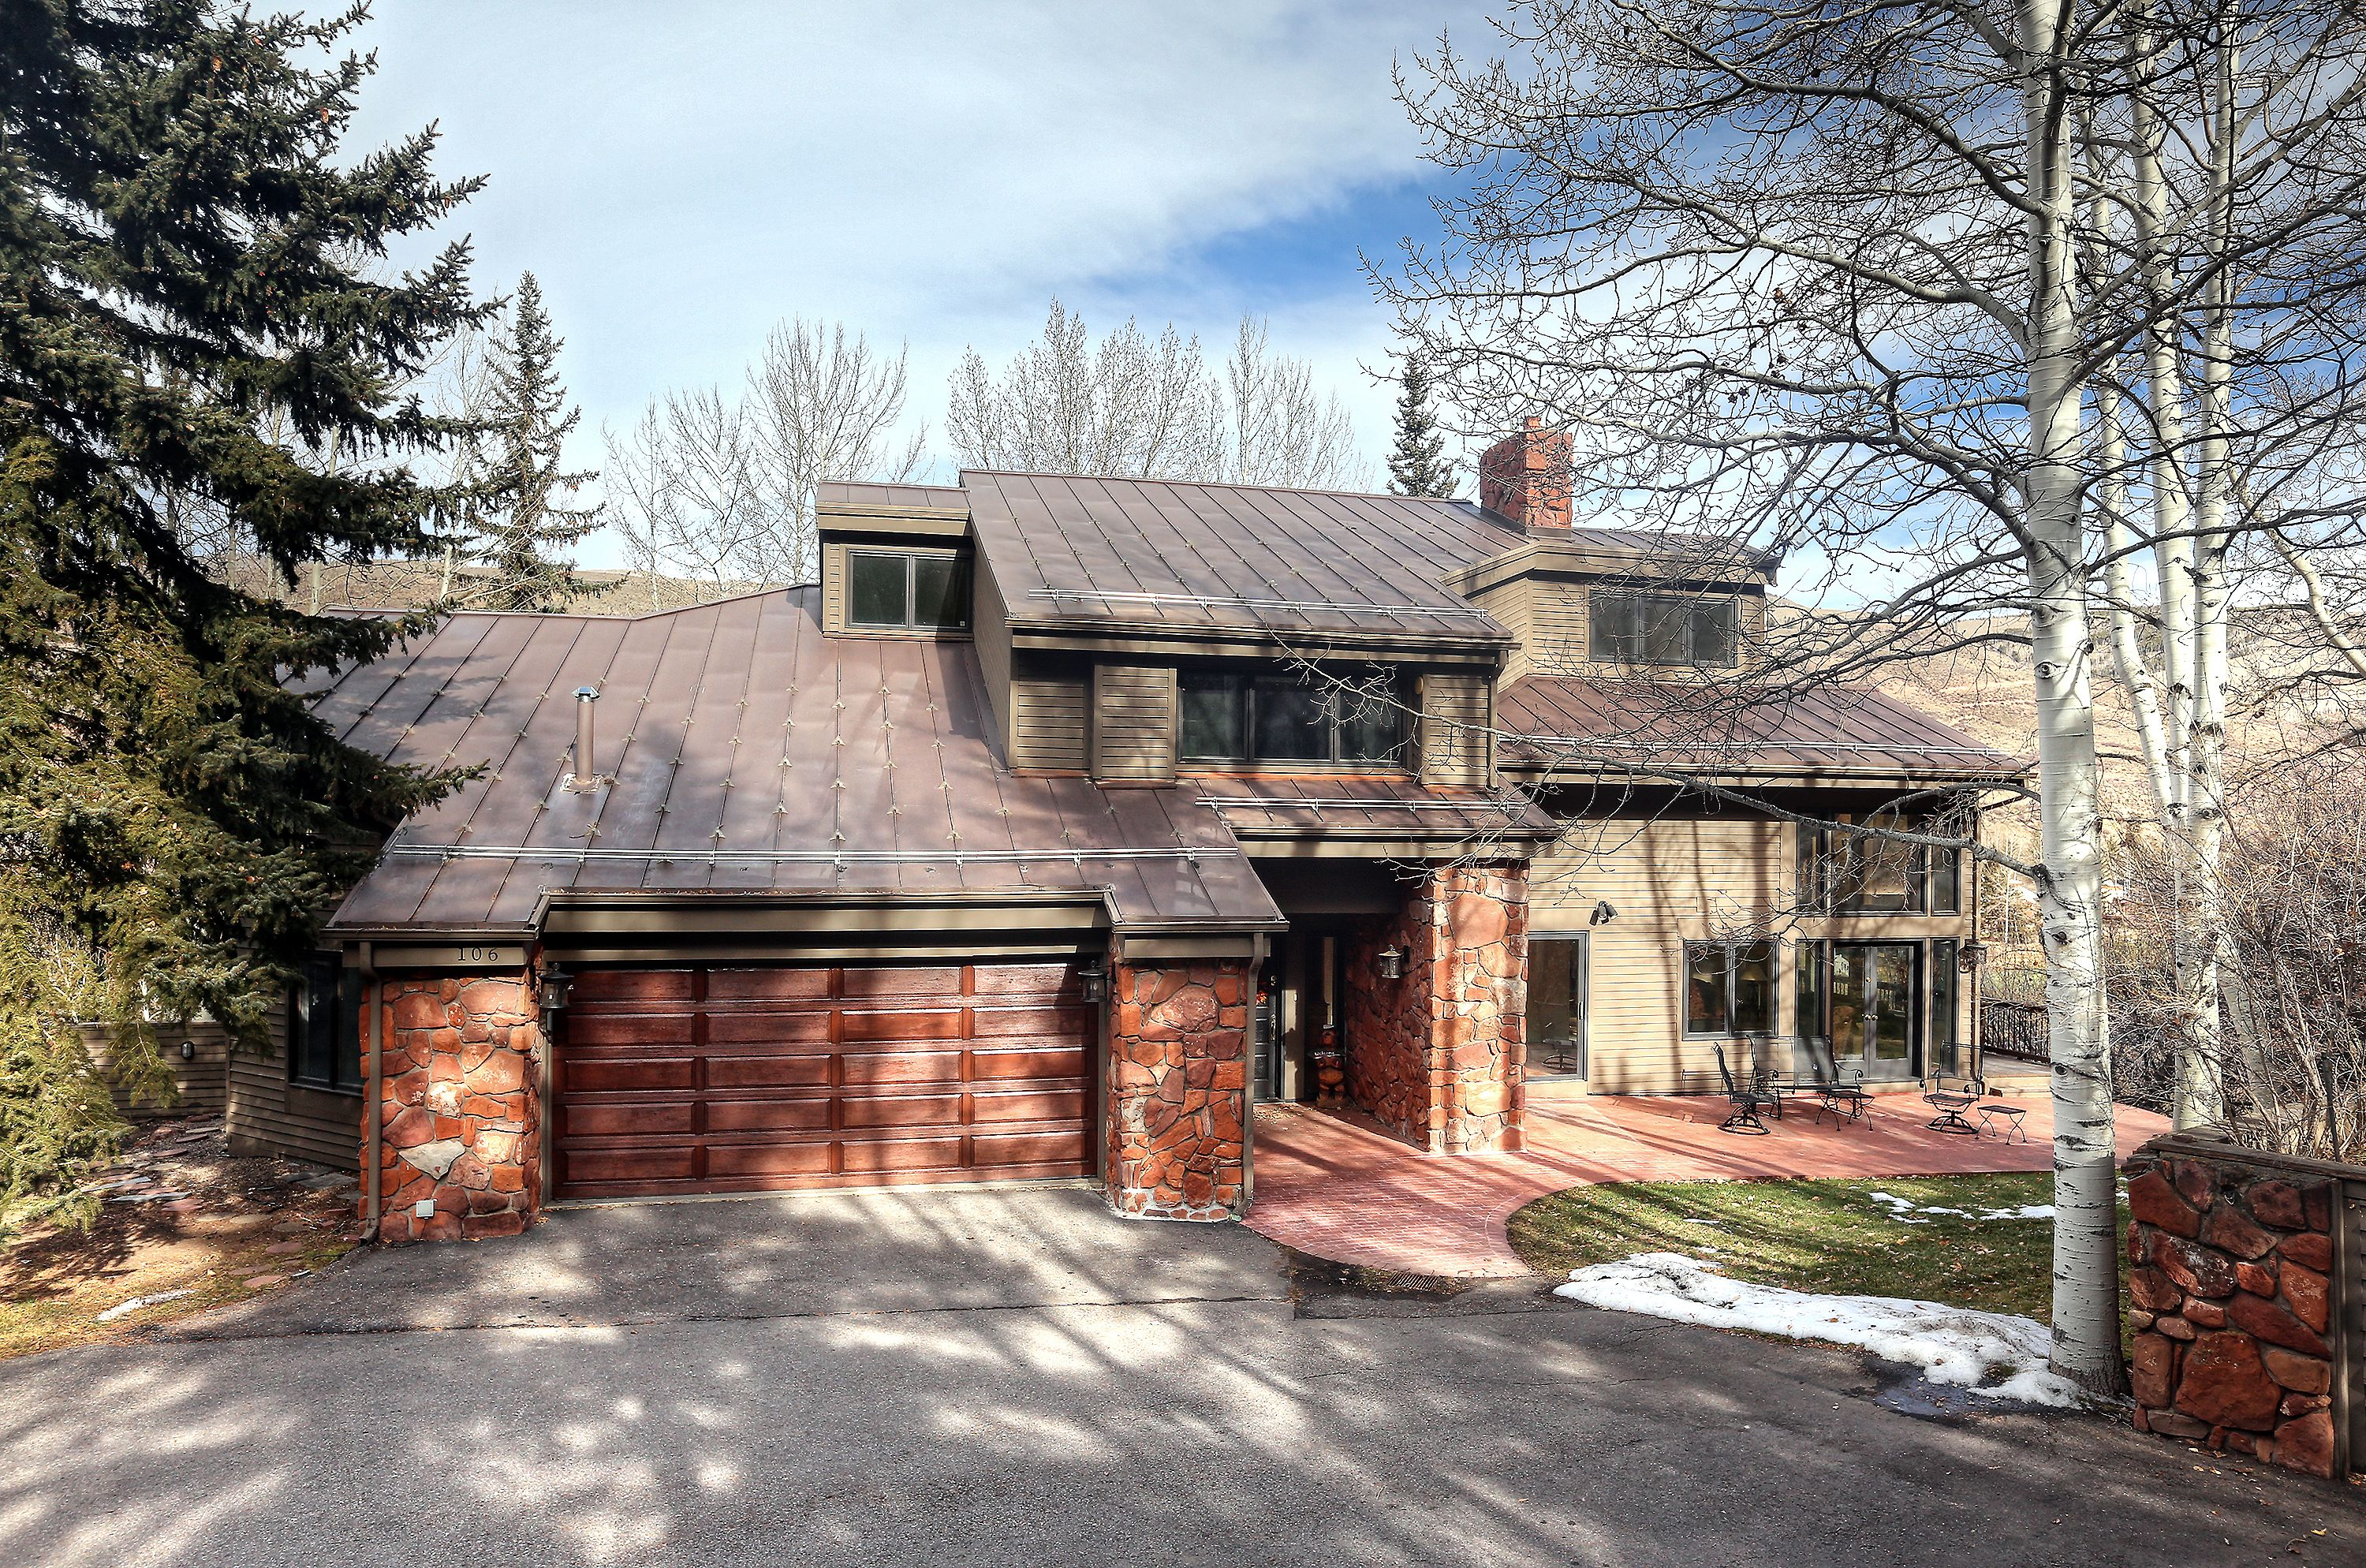 106 Ptarmigan Court EagleVail, CO 81620